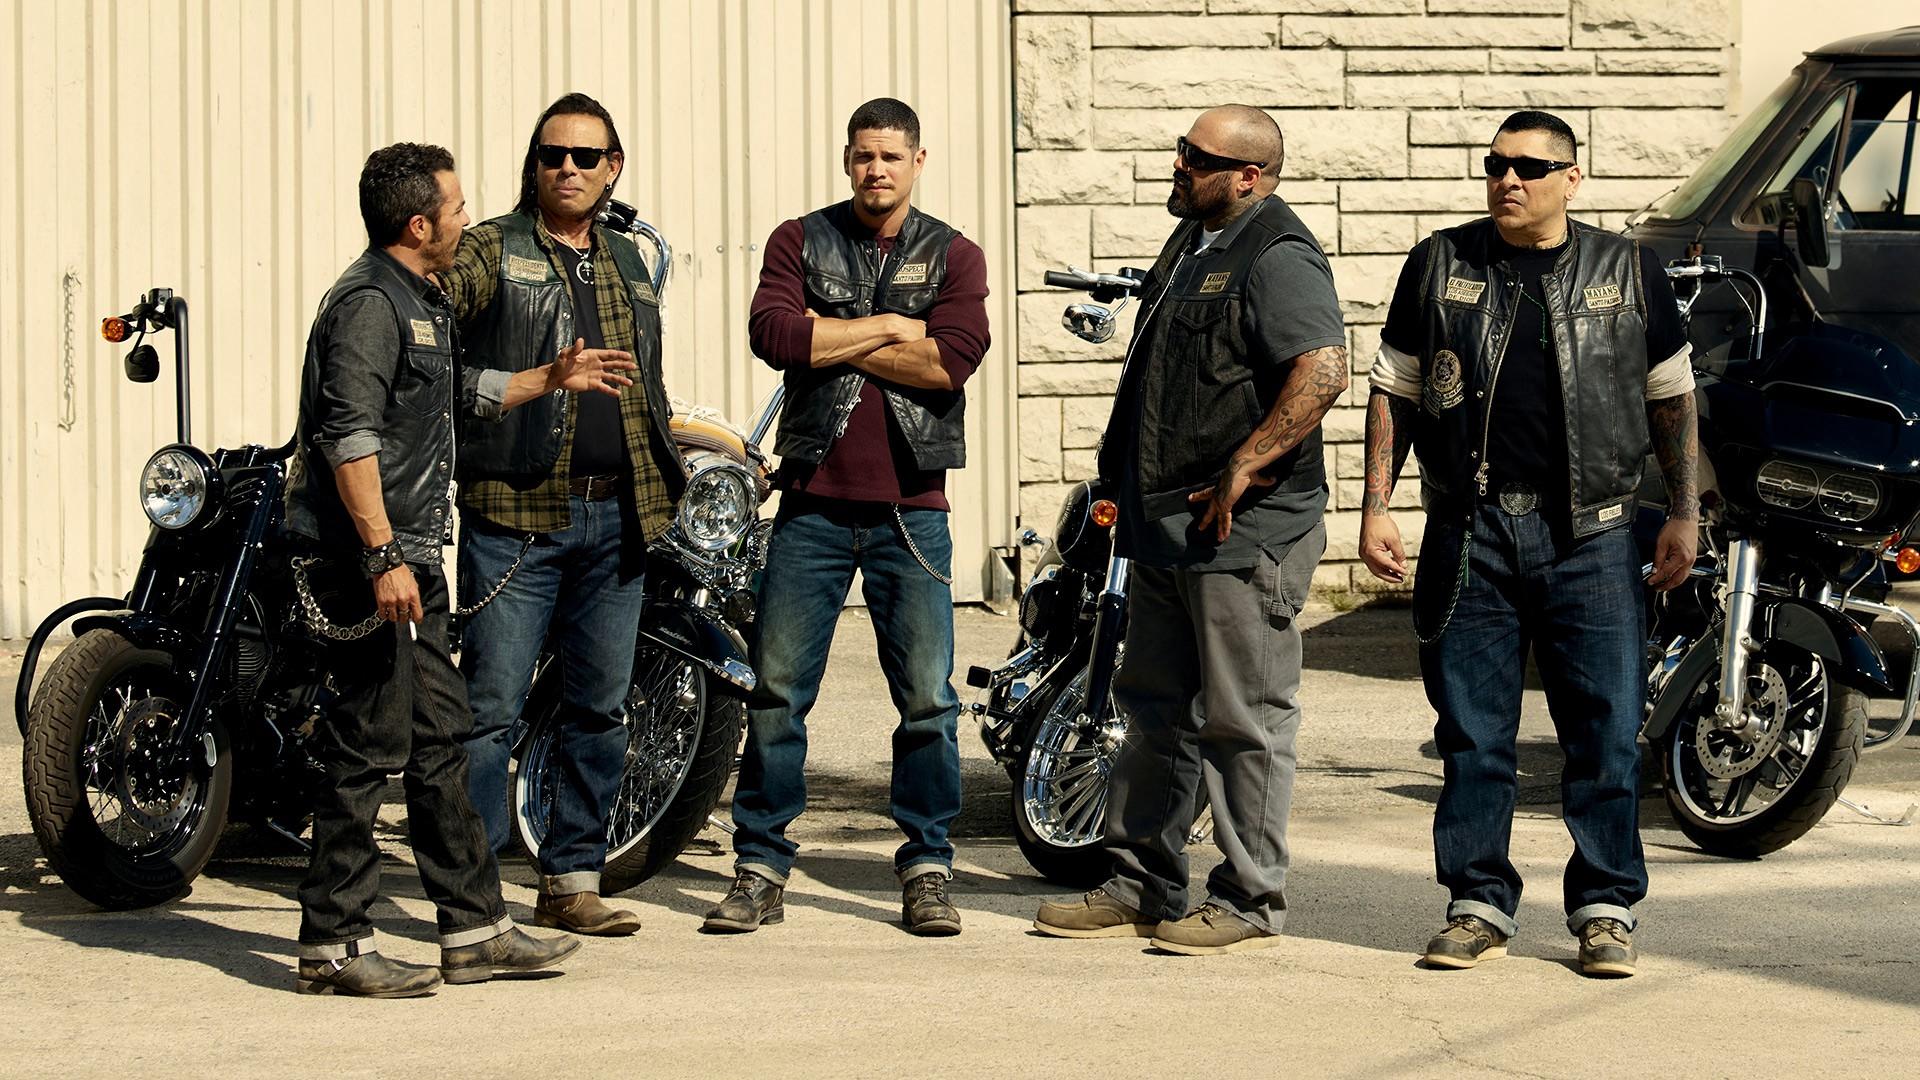 HQ-1080p !] Watch Mayans MC Season 2 Episode 1 (2019) Full